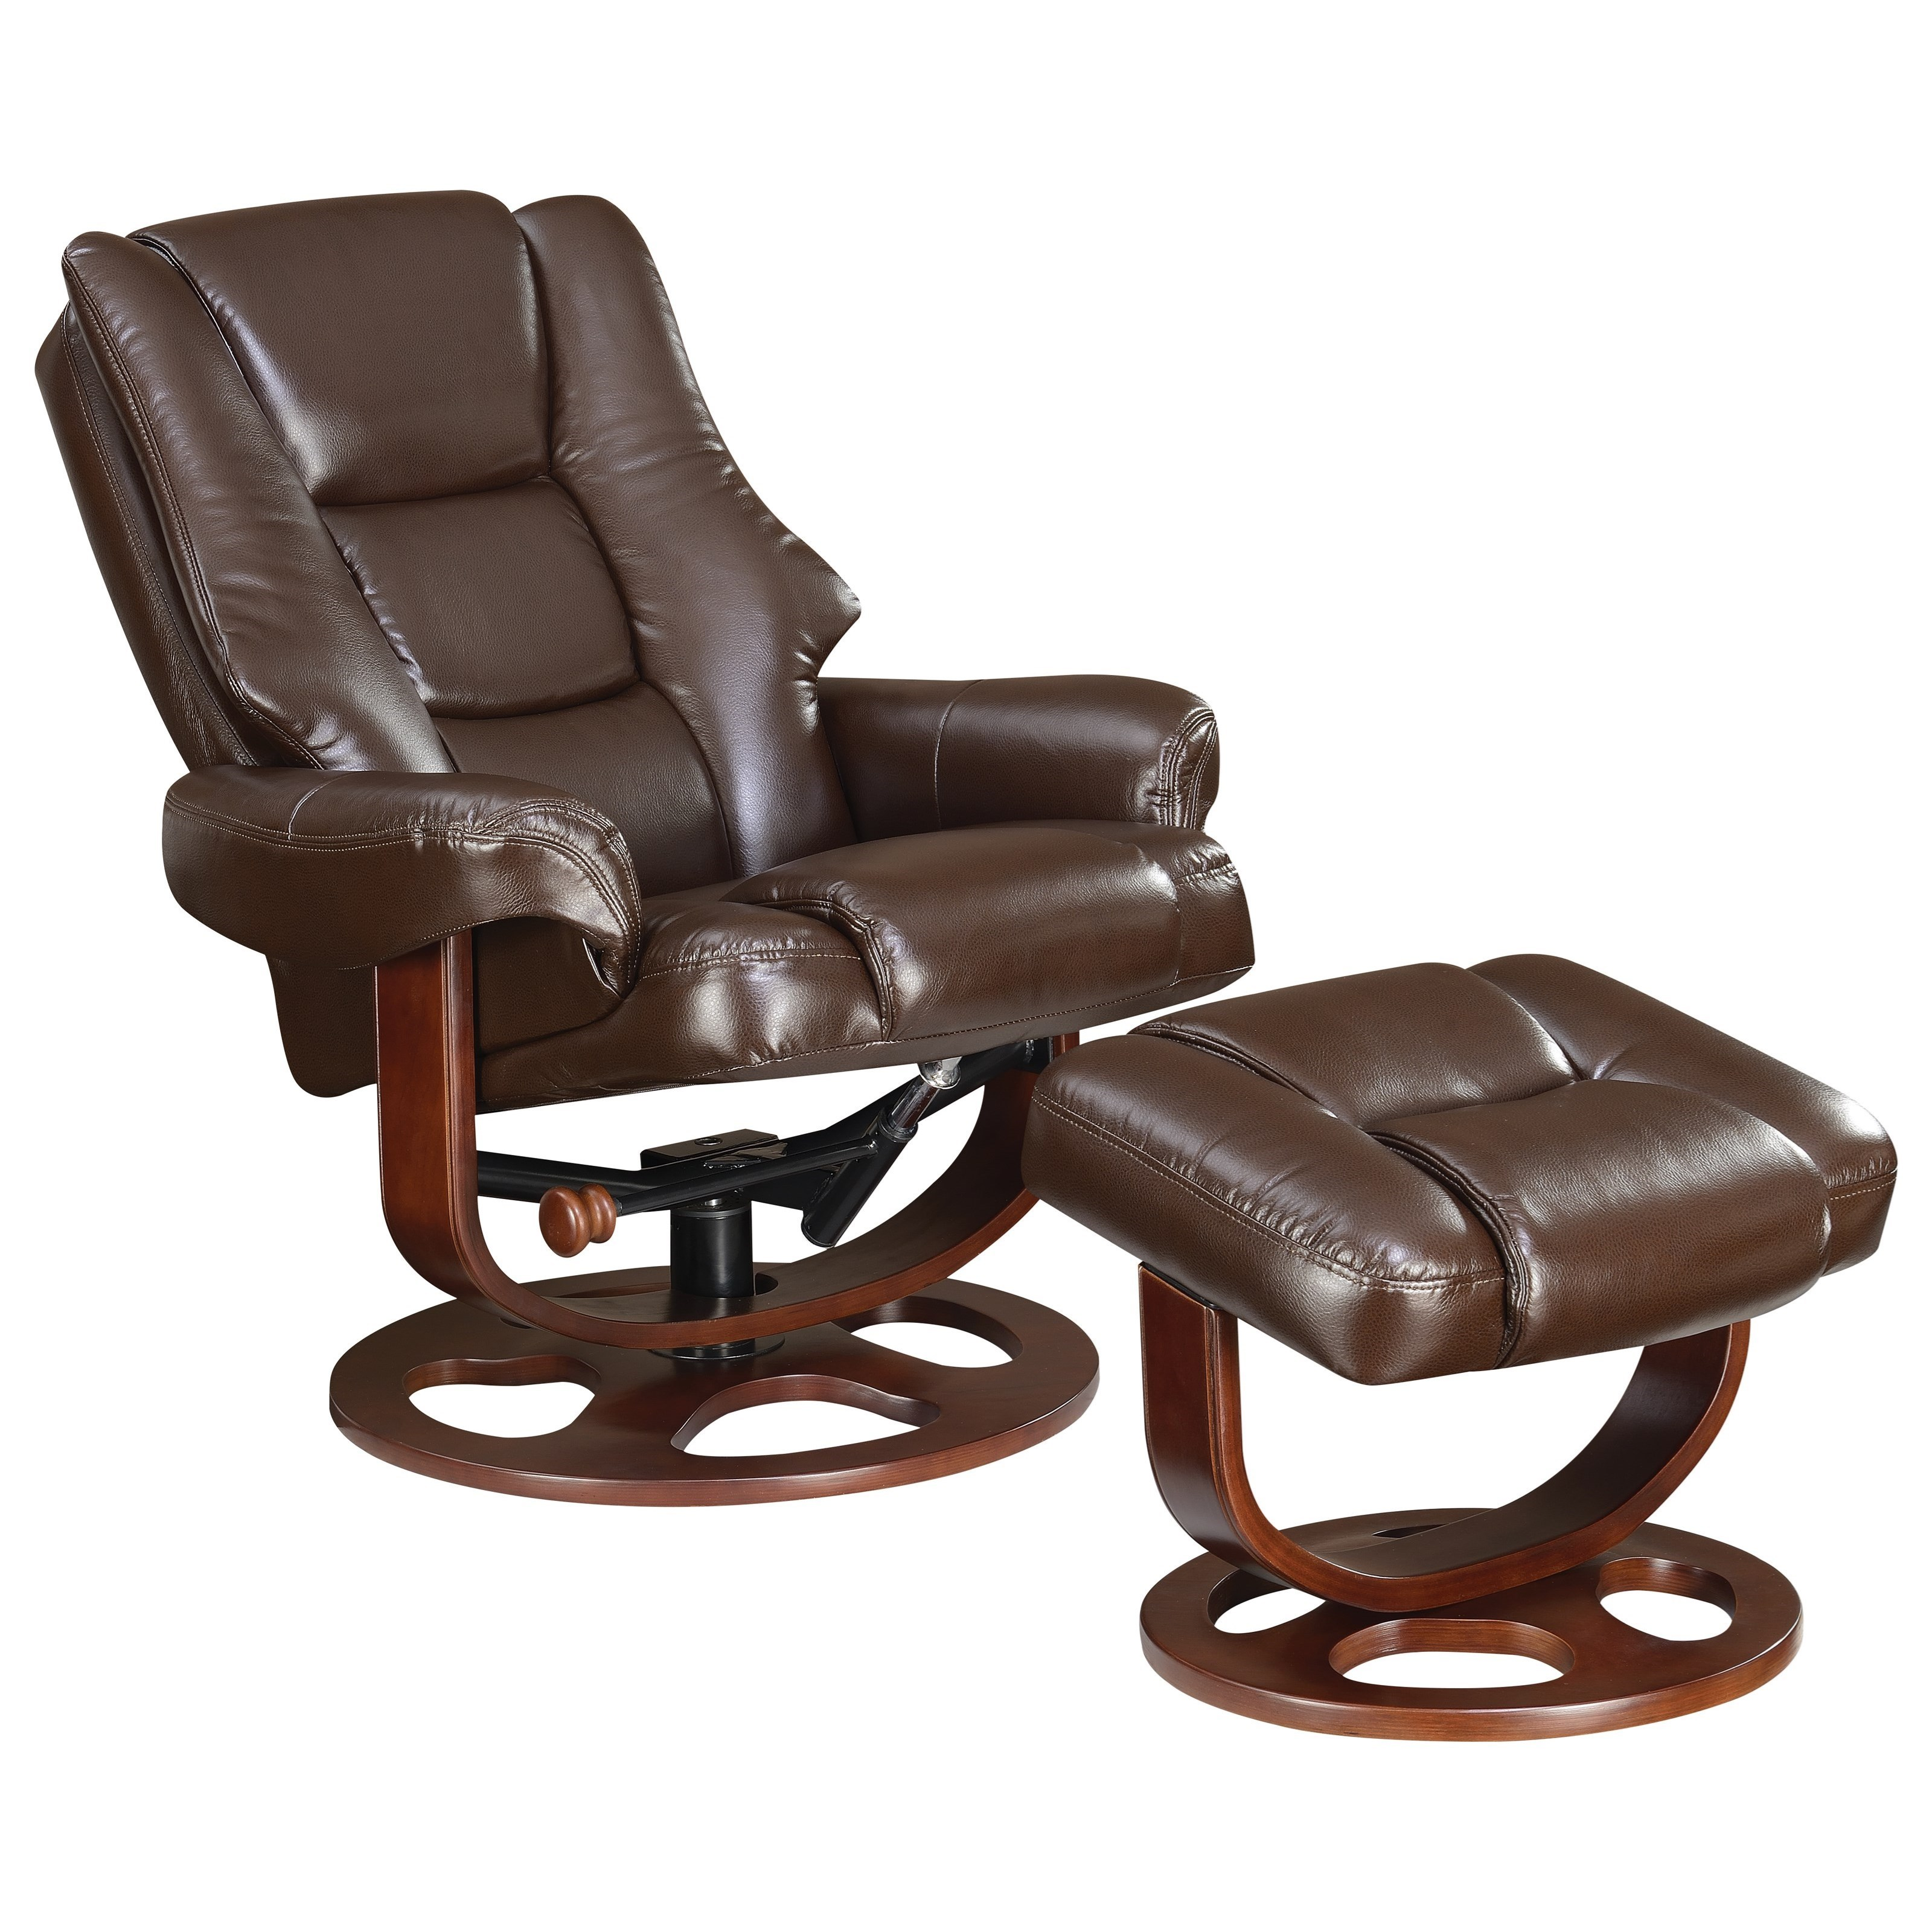 Chairs With Ottomans Coaster Recliners With Ottomans 600086 Plush Recliner And